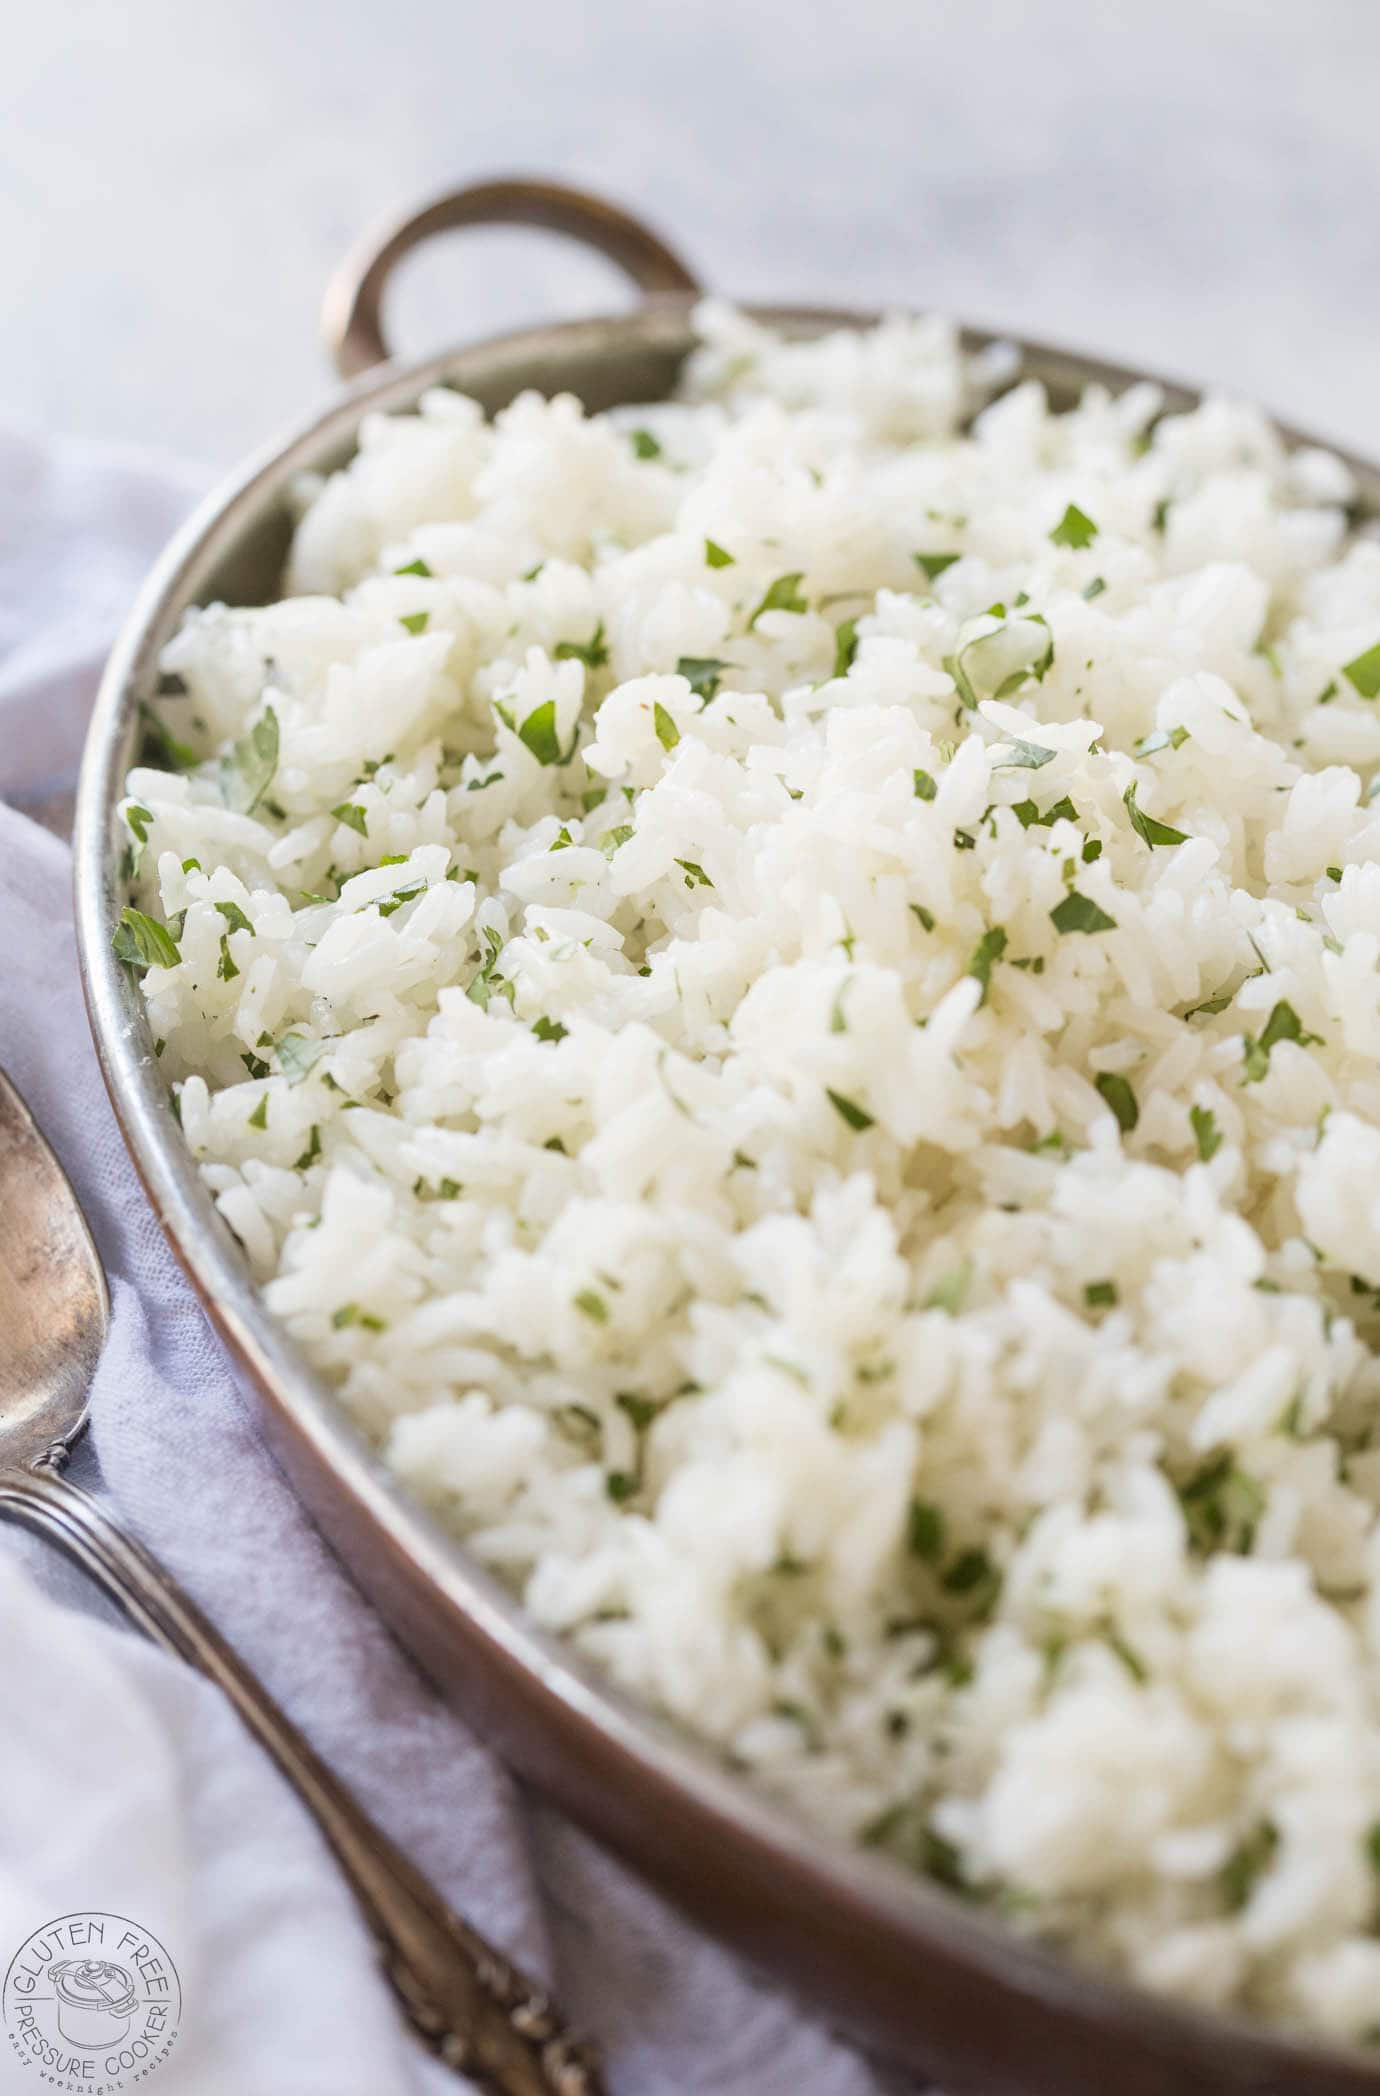 Cilantro lime rice in an oval dish